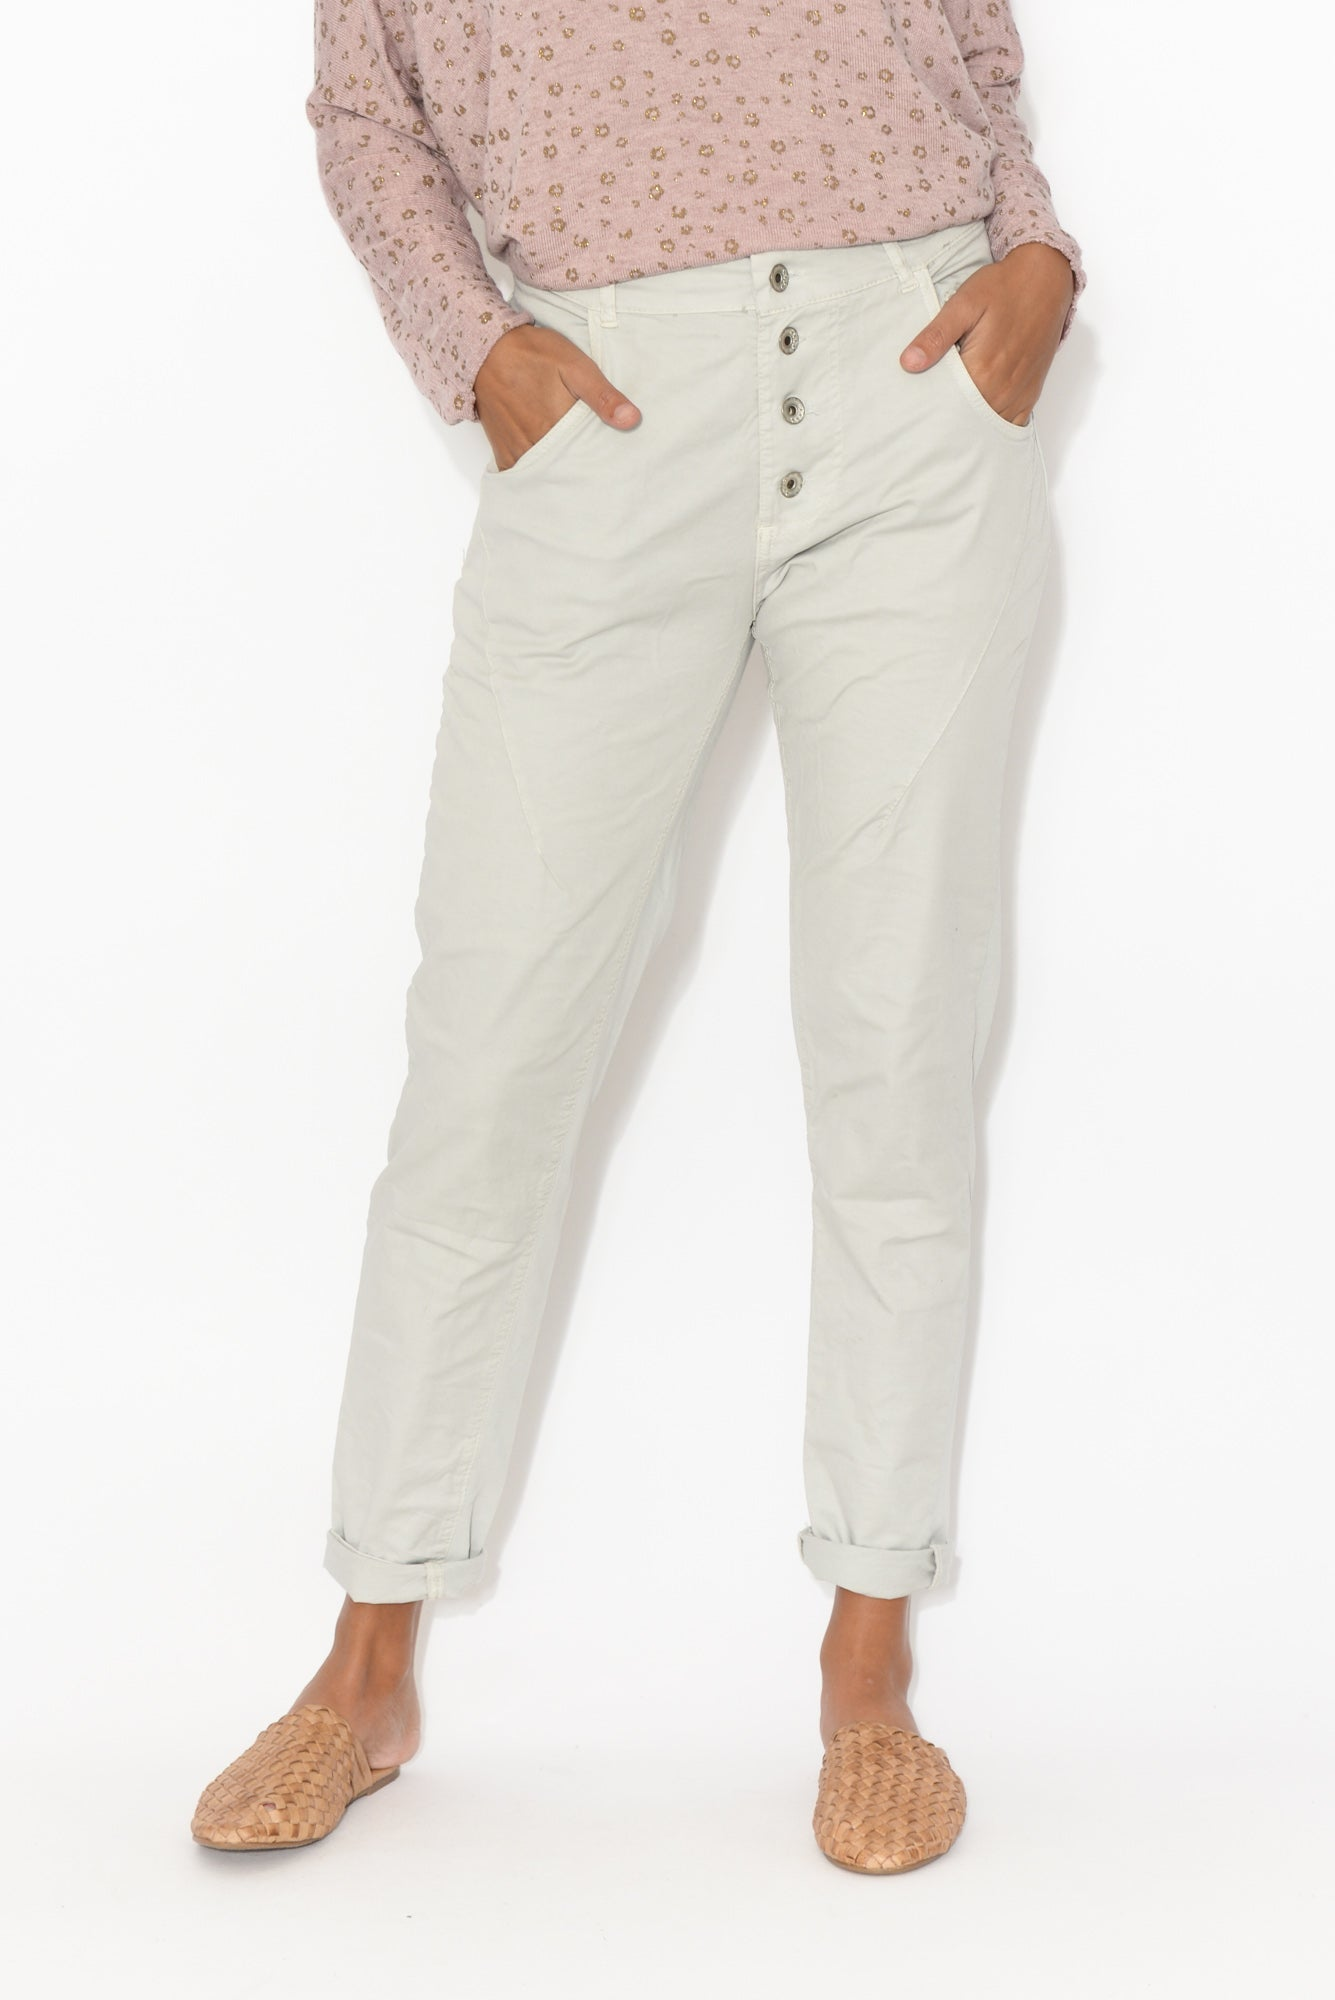 Alexis Grey Stretch Back Pant